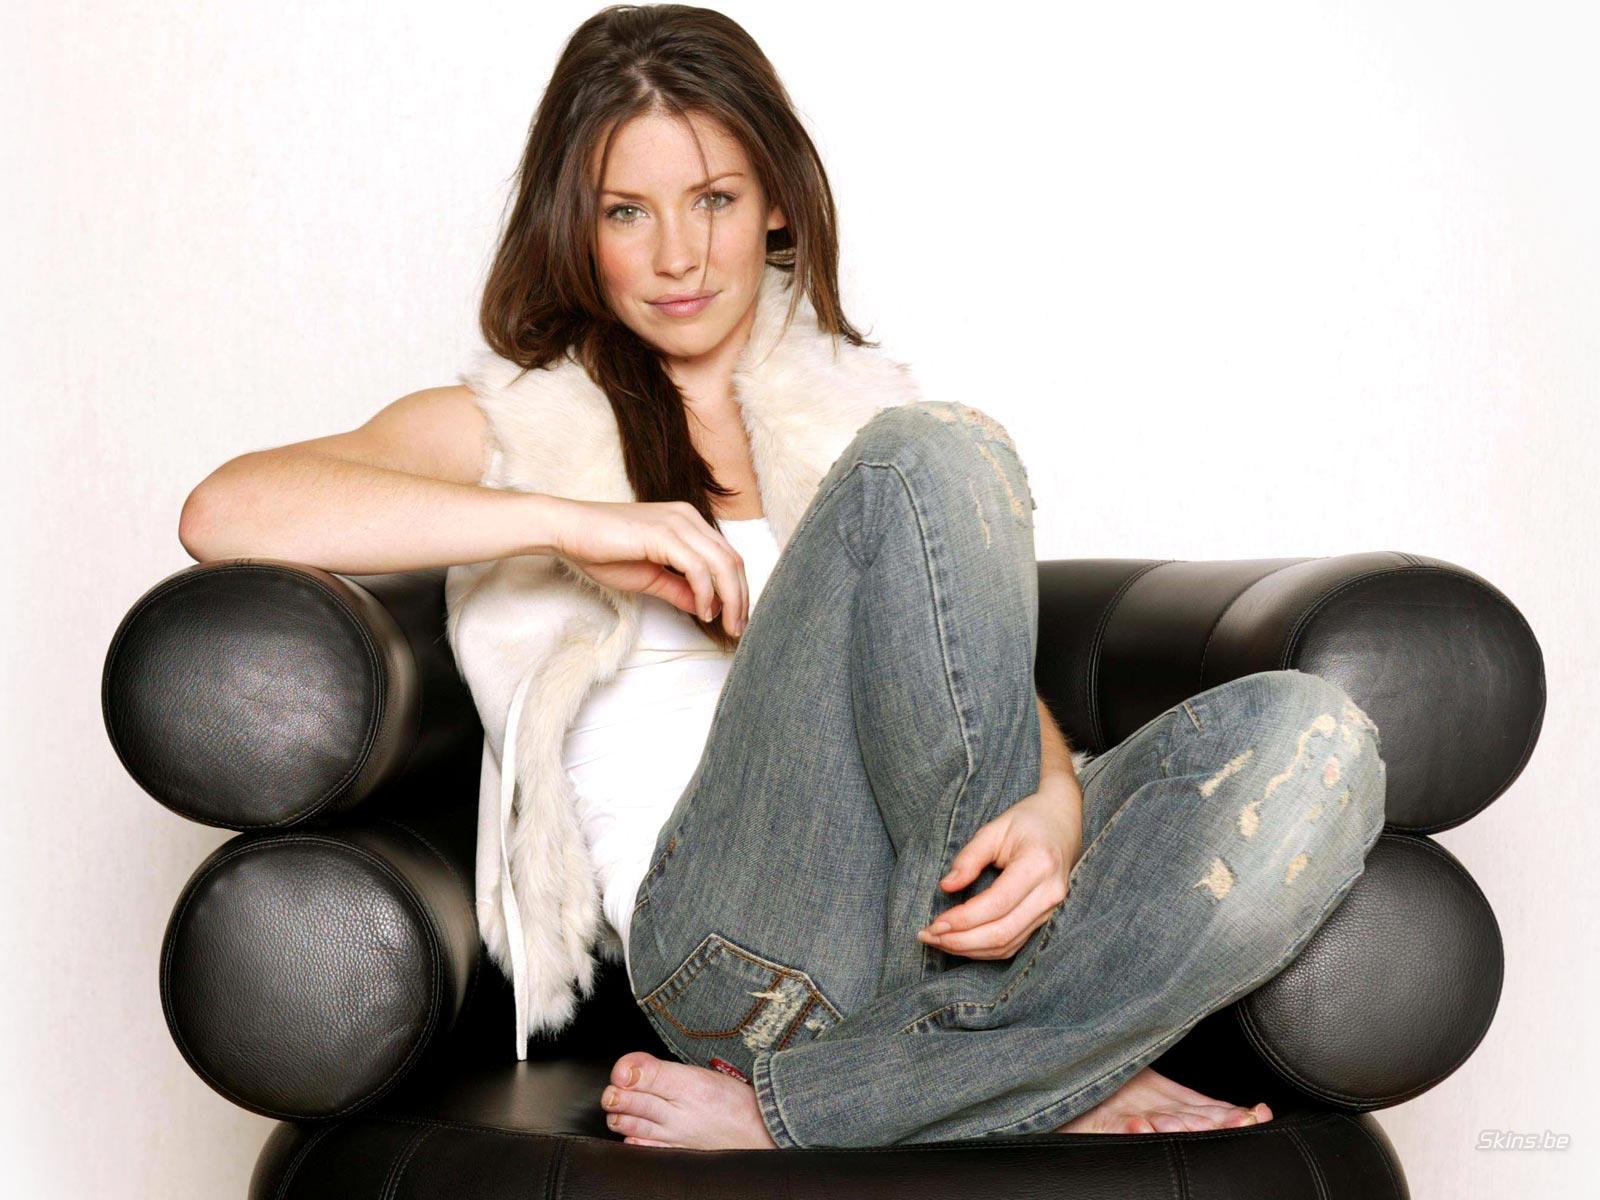 Evangeline Lilly Wallpapers hd